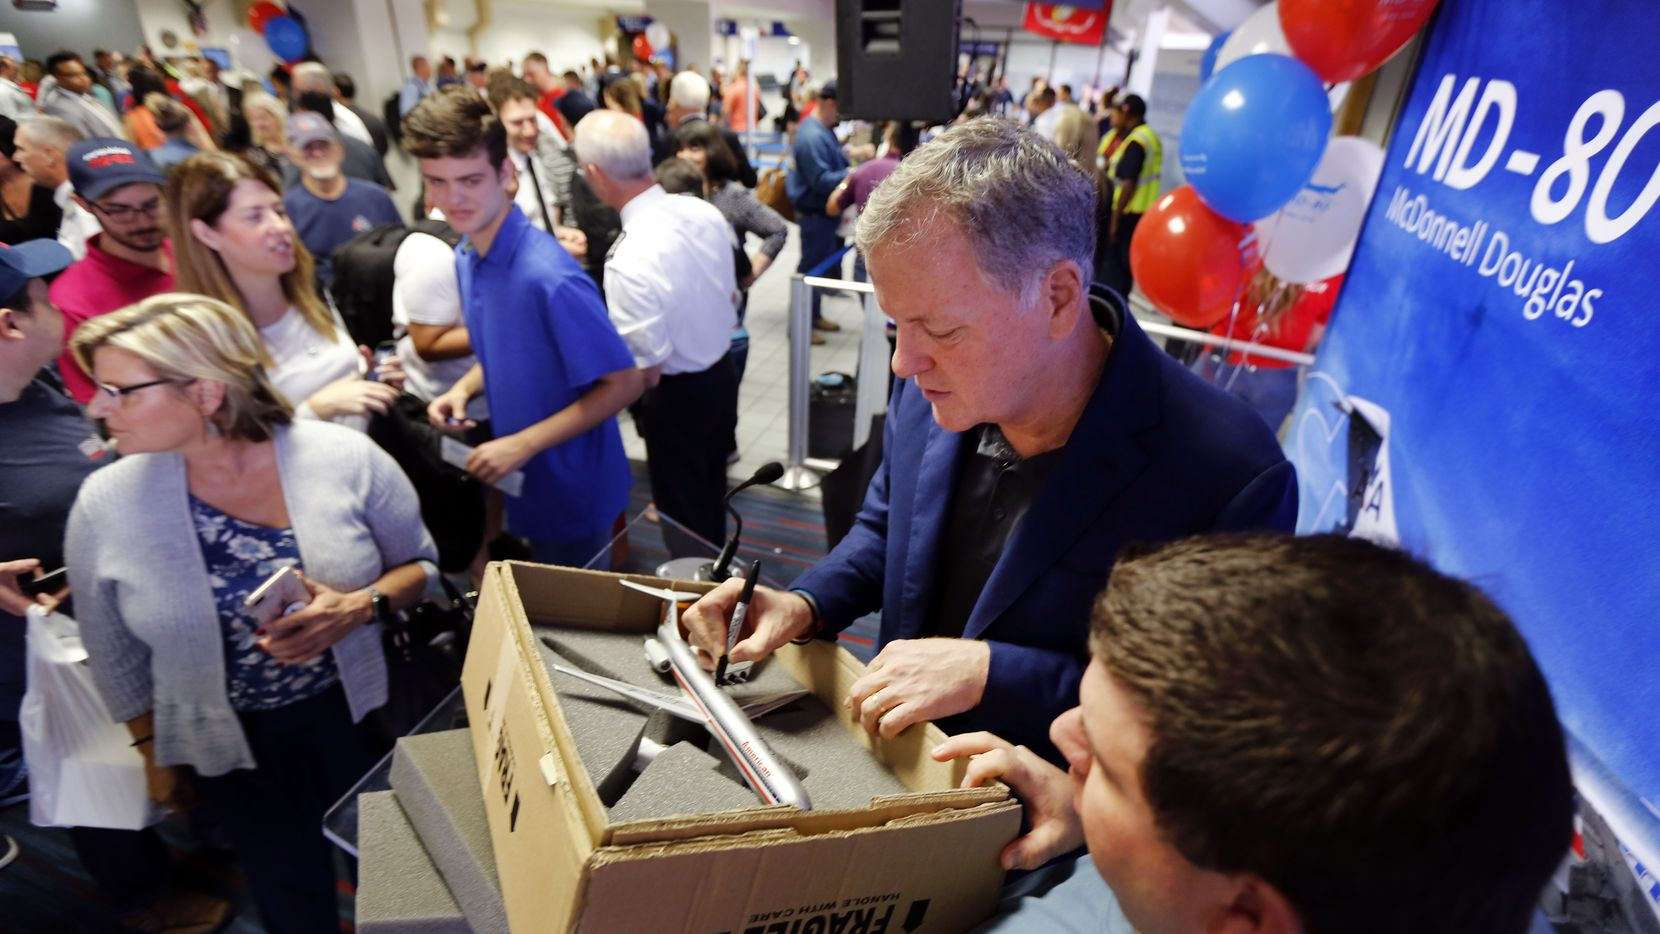 American Airlines CEO Doug Parker signed a model of an American MD-80 for Don Collins of Cleveland. Collins flew in the morning of Sept. 4, 2019, to join the festivities associated with American's final MD-80 revenue flight, which departed DFW International Airport for Chicago. The airline was retiring its final four MD-80s, which had been in service since the 1980s.